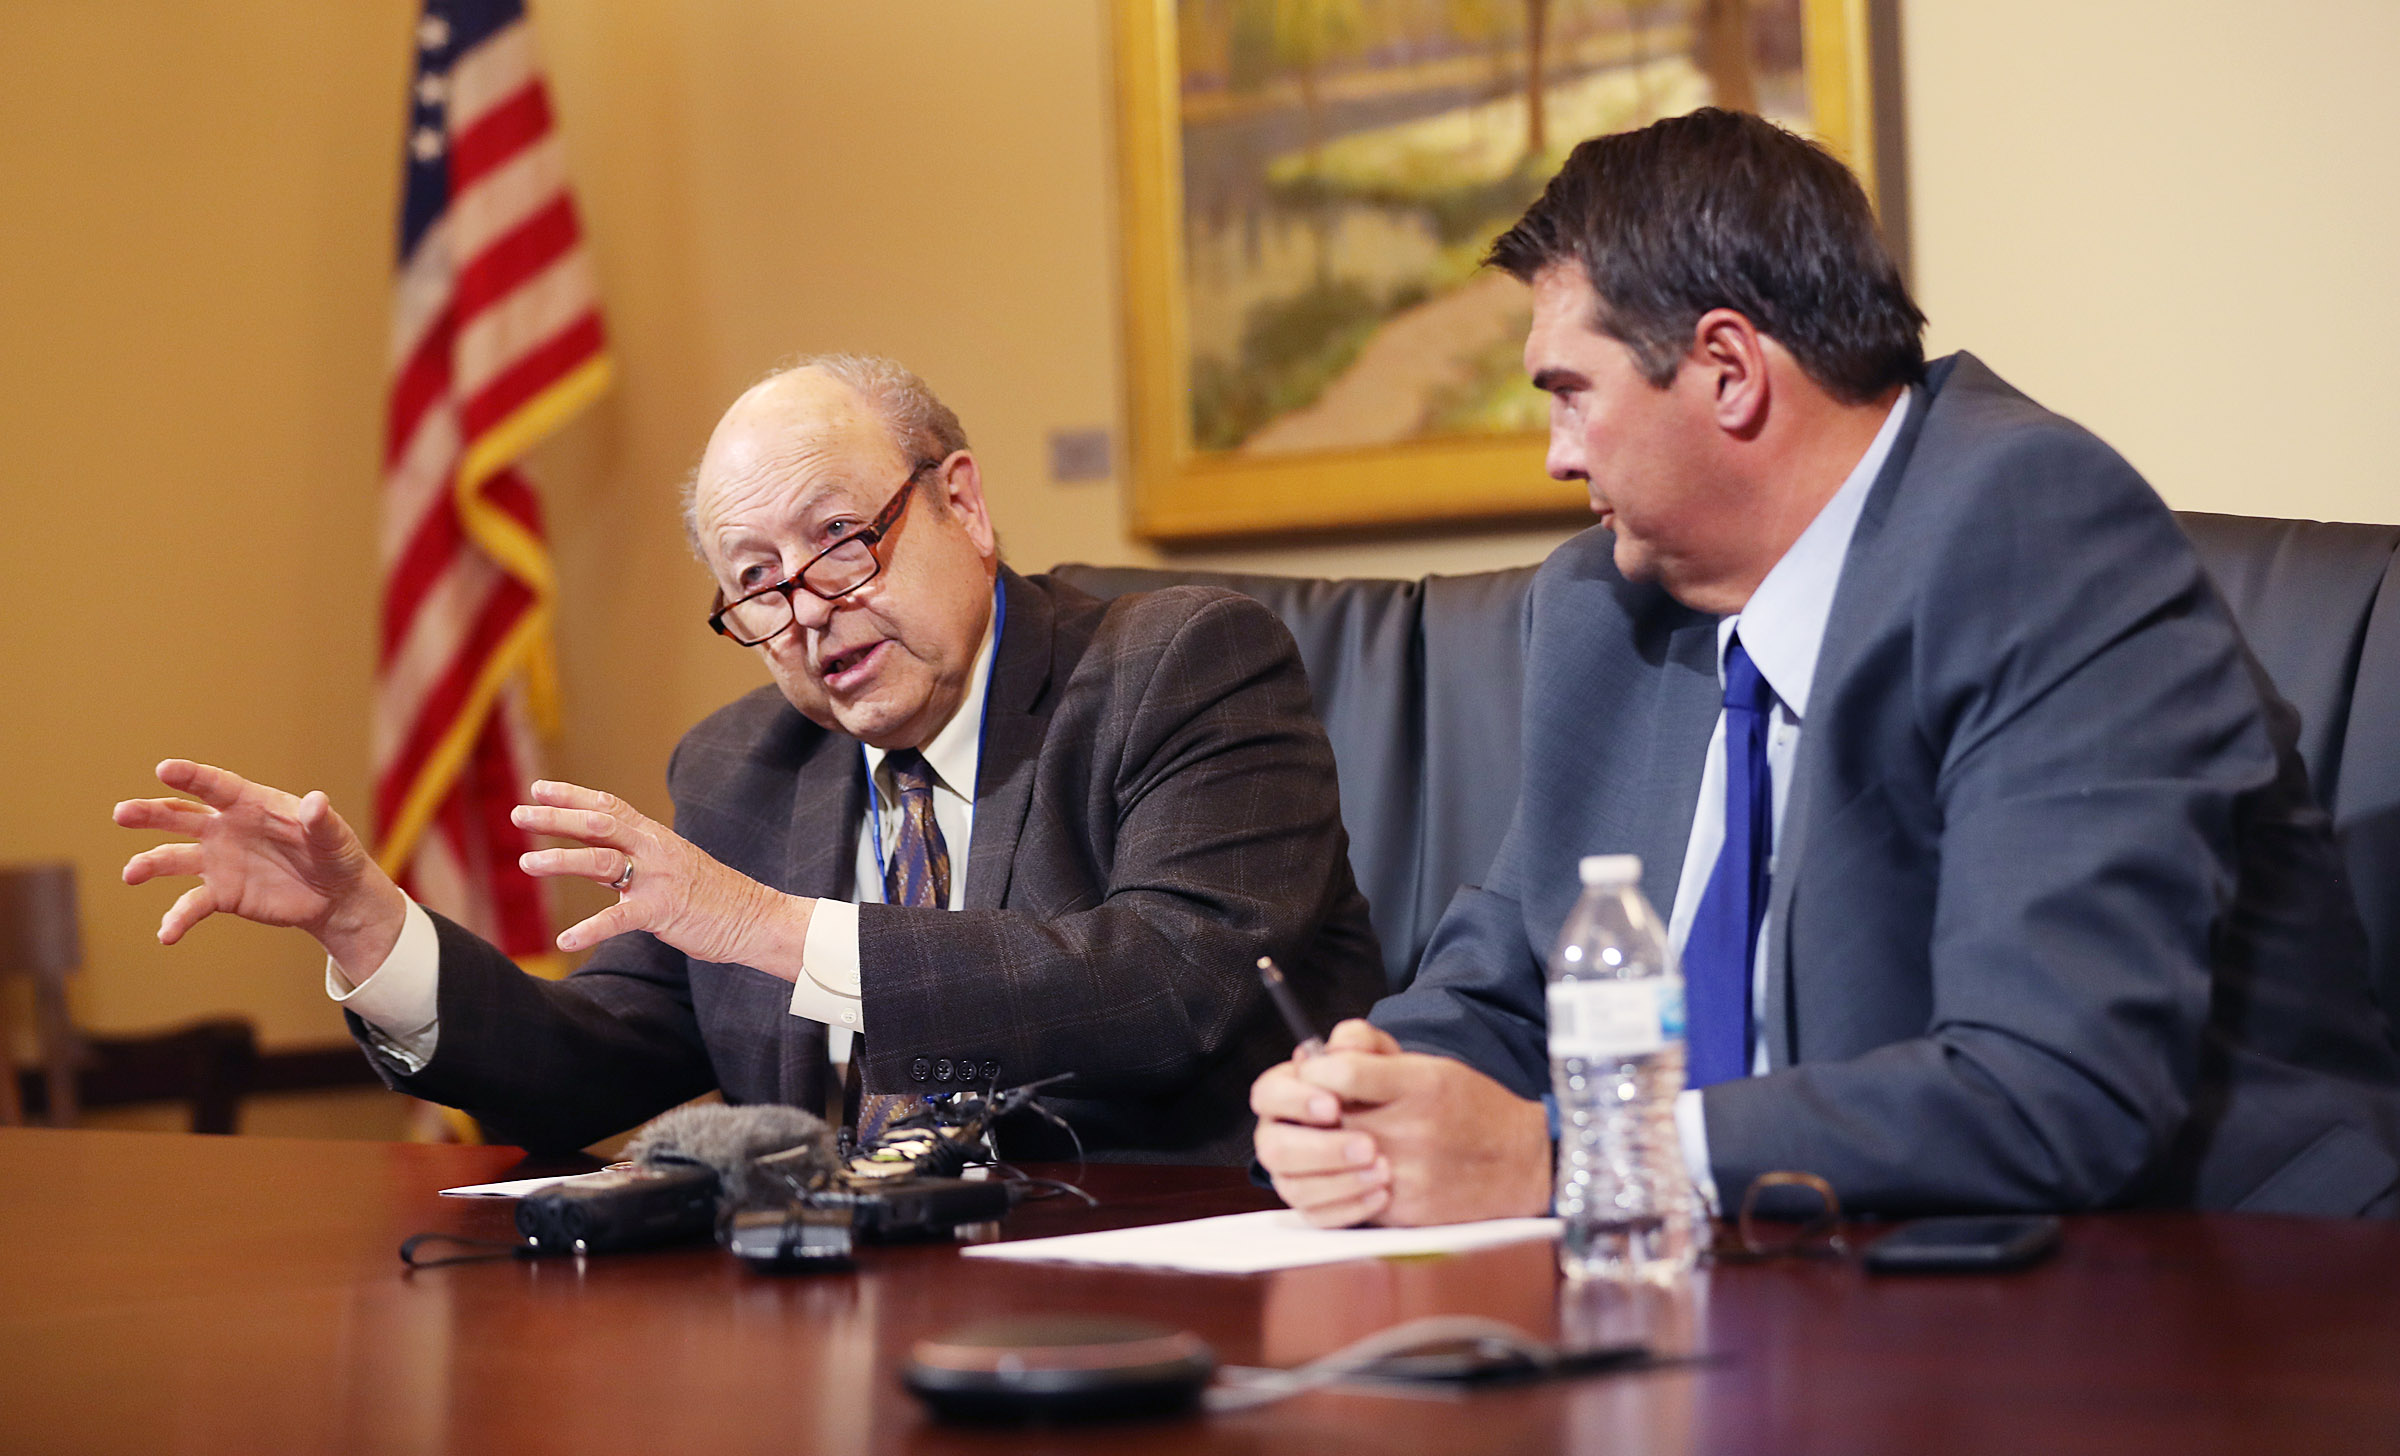 Sen. Lyle Hillyard, R-Logan, left, and Rep. Francis Gibson, R-Mapleton, co-chairmen of the Tax Restructuring and Equalization Task Force, answer questions about a draft tax law change during a media availability at the Capitol in Salt Lake City on Friday, Oct. 18, 2019.